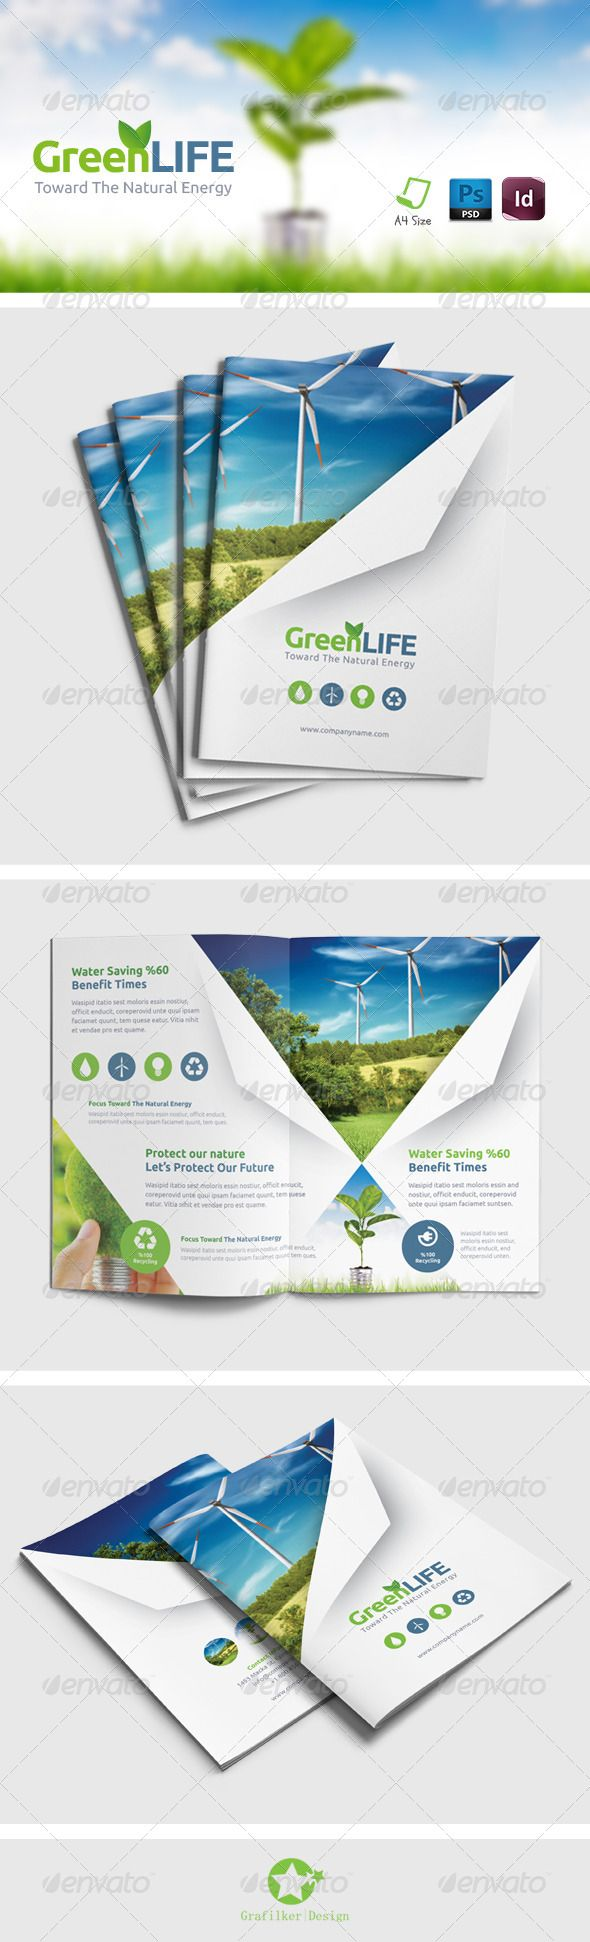 Green Energy Brochure Templates, clean, corporate, design, eco, ecological, energy, environment, environmental, family, flyer, fresh, future, grafilker, green, happiness, health, life, nature, organic, pollution, population, recycling, sheet, sports, template, water, white, world